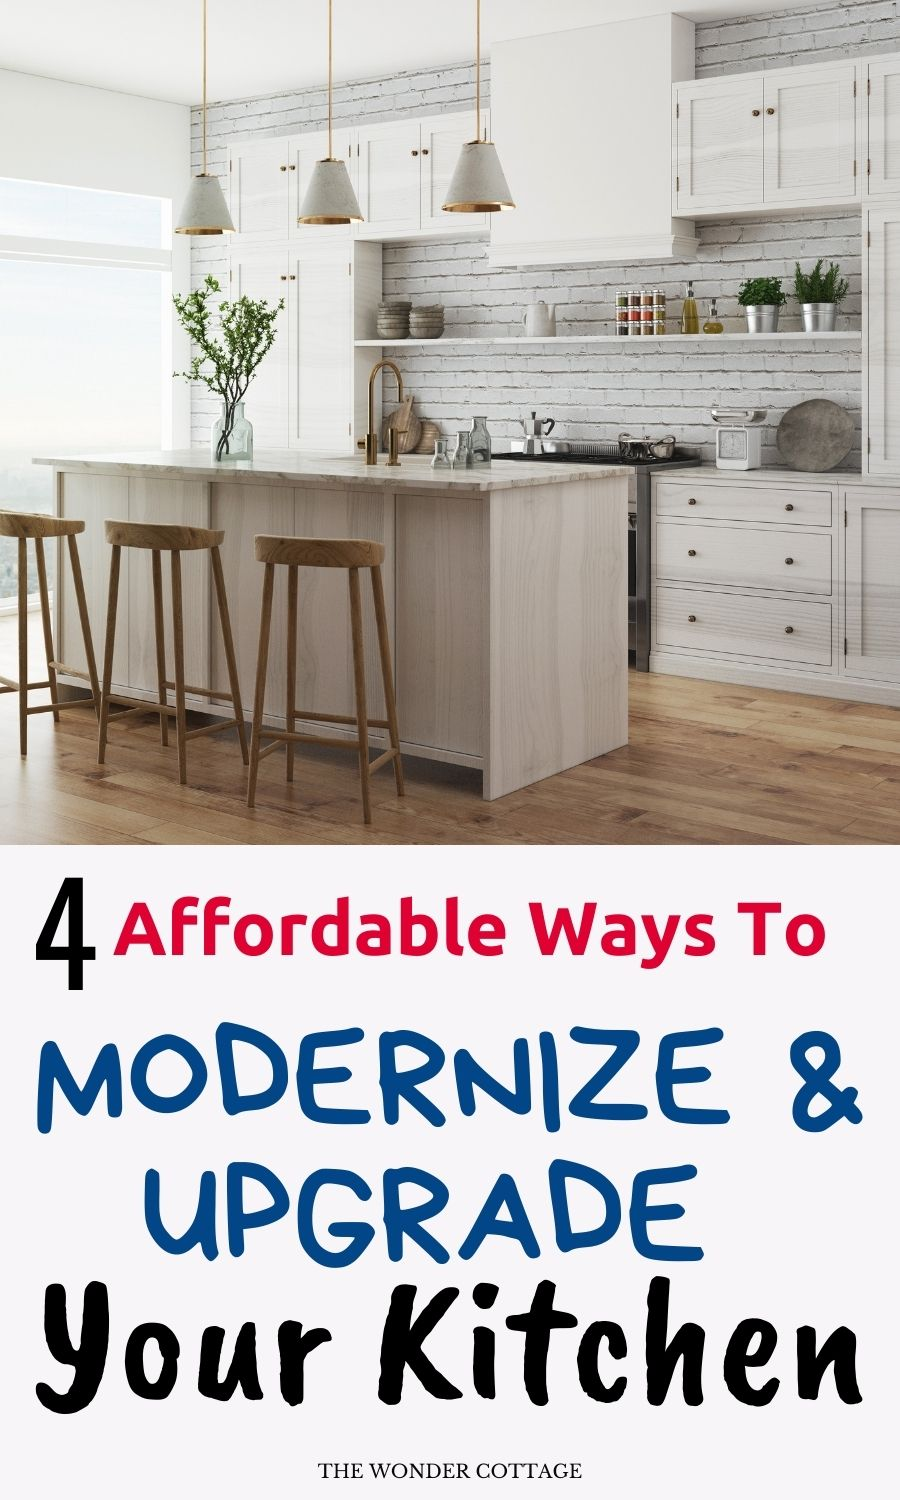 4 Affordable Ways To Modernize And Upgrade Your Kitchen